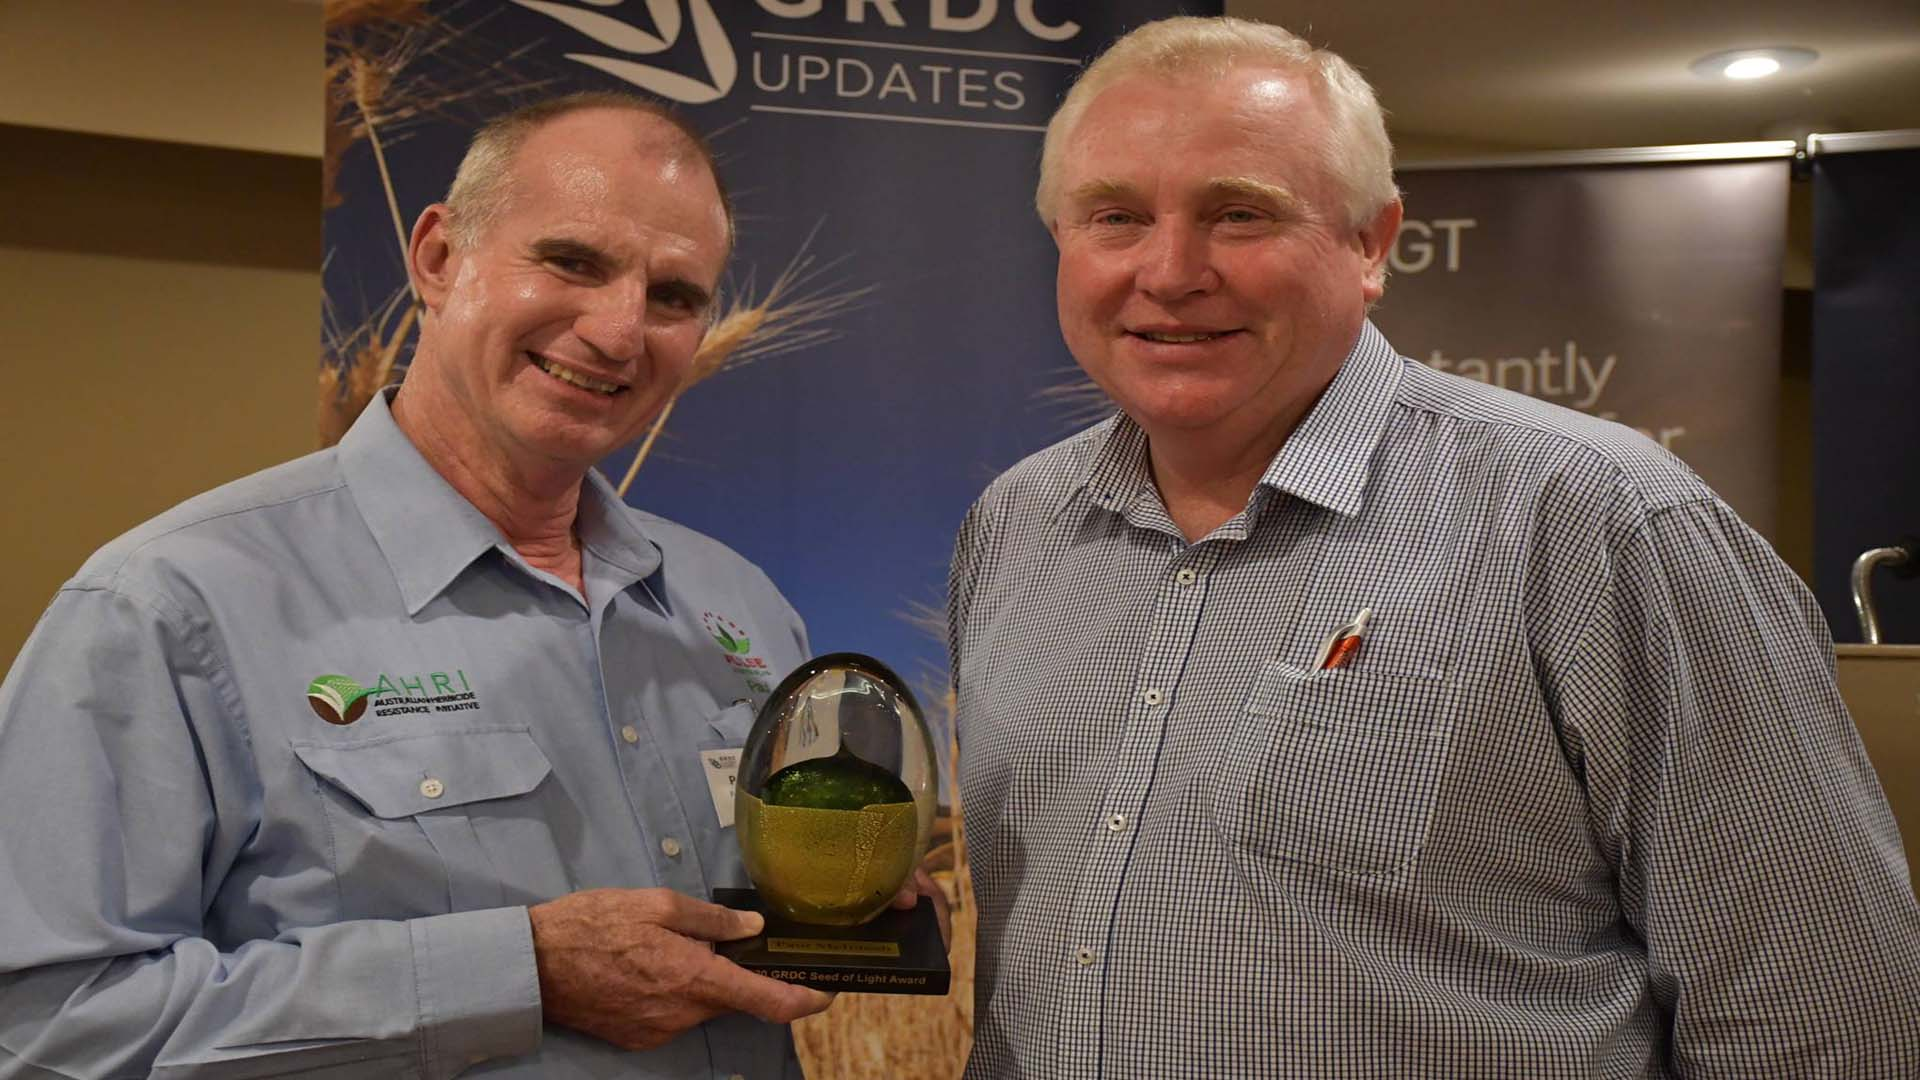 Well-known agronomist Paul McIntosh, left, was acknowledged for his tireless dedication to the grains industry with the GRDC northern region 2020 Seed of Light Award - presented by GRDC Northern Region Panel chair John Minogue, right, at the GRDC Grains Research Update in Goondiwindi.